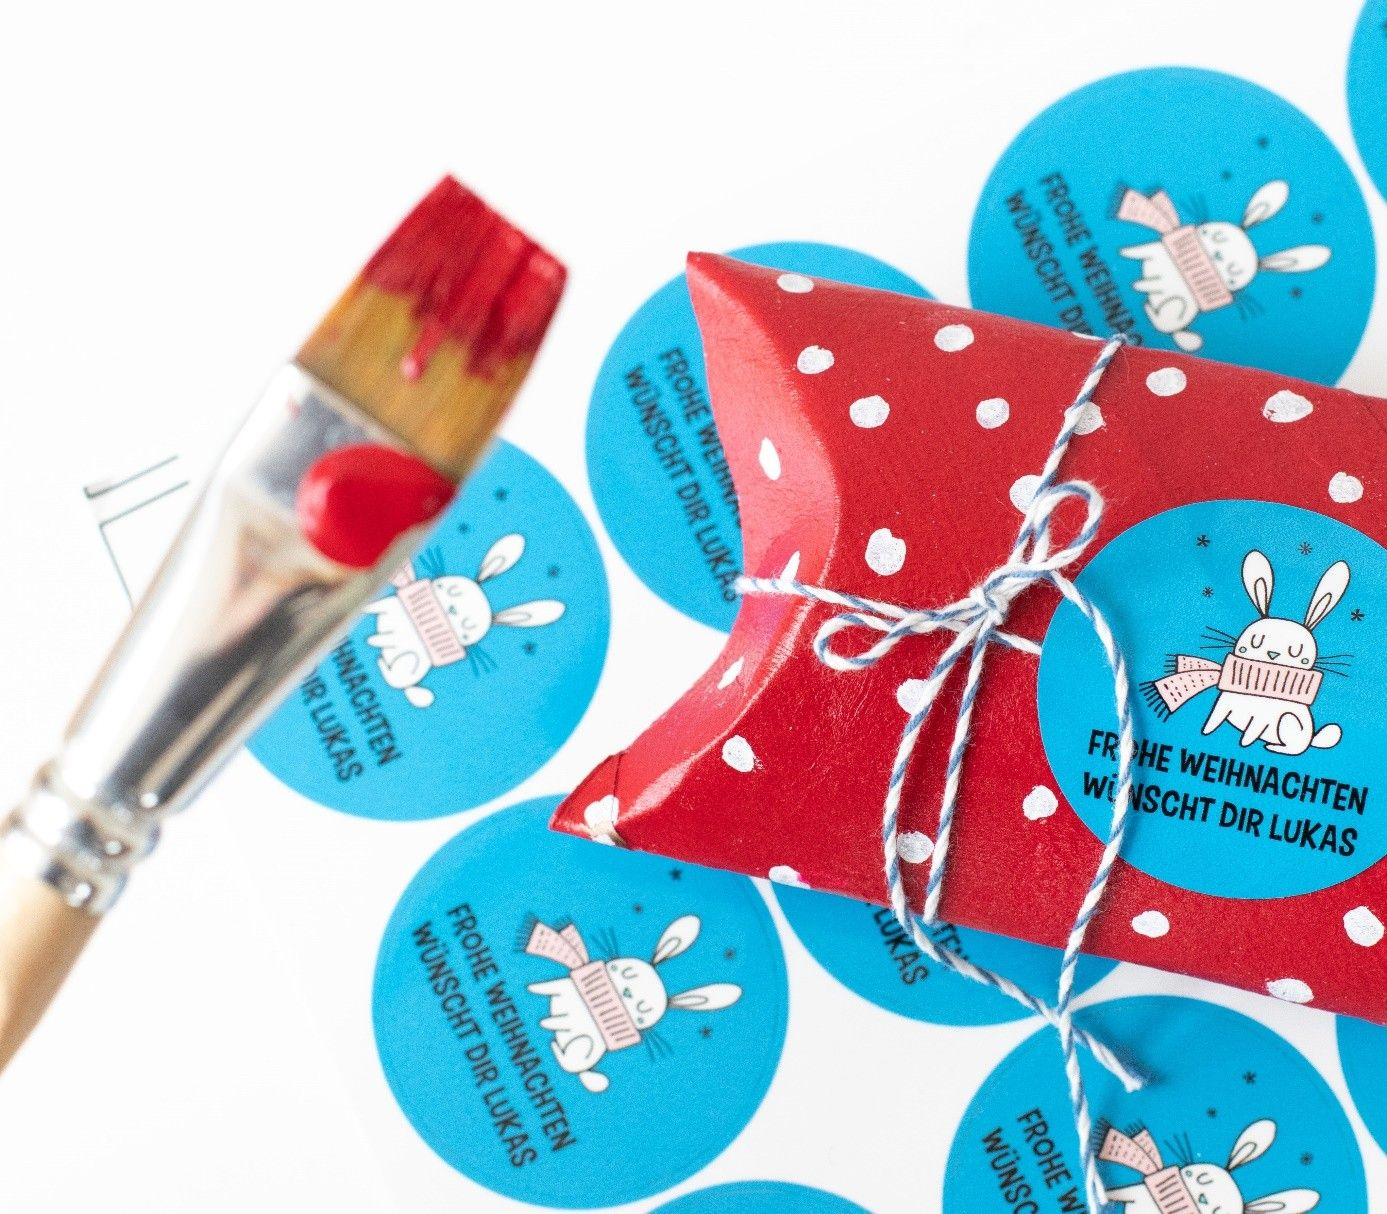 Funny gift wrappings for Christmas